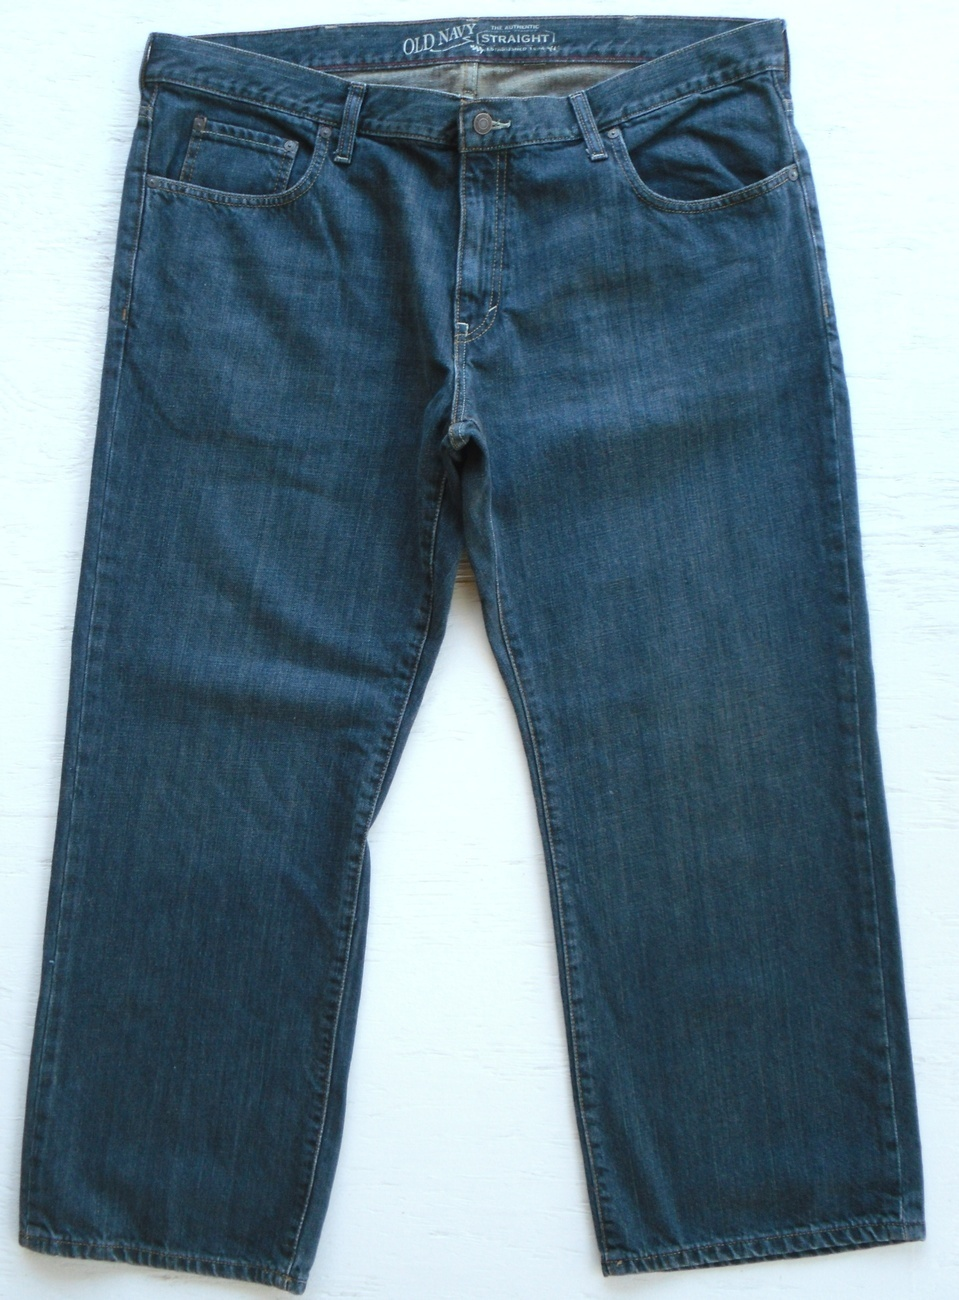 OLD NAVY Straight Denim Jeans Mens 40 x 29